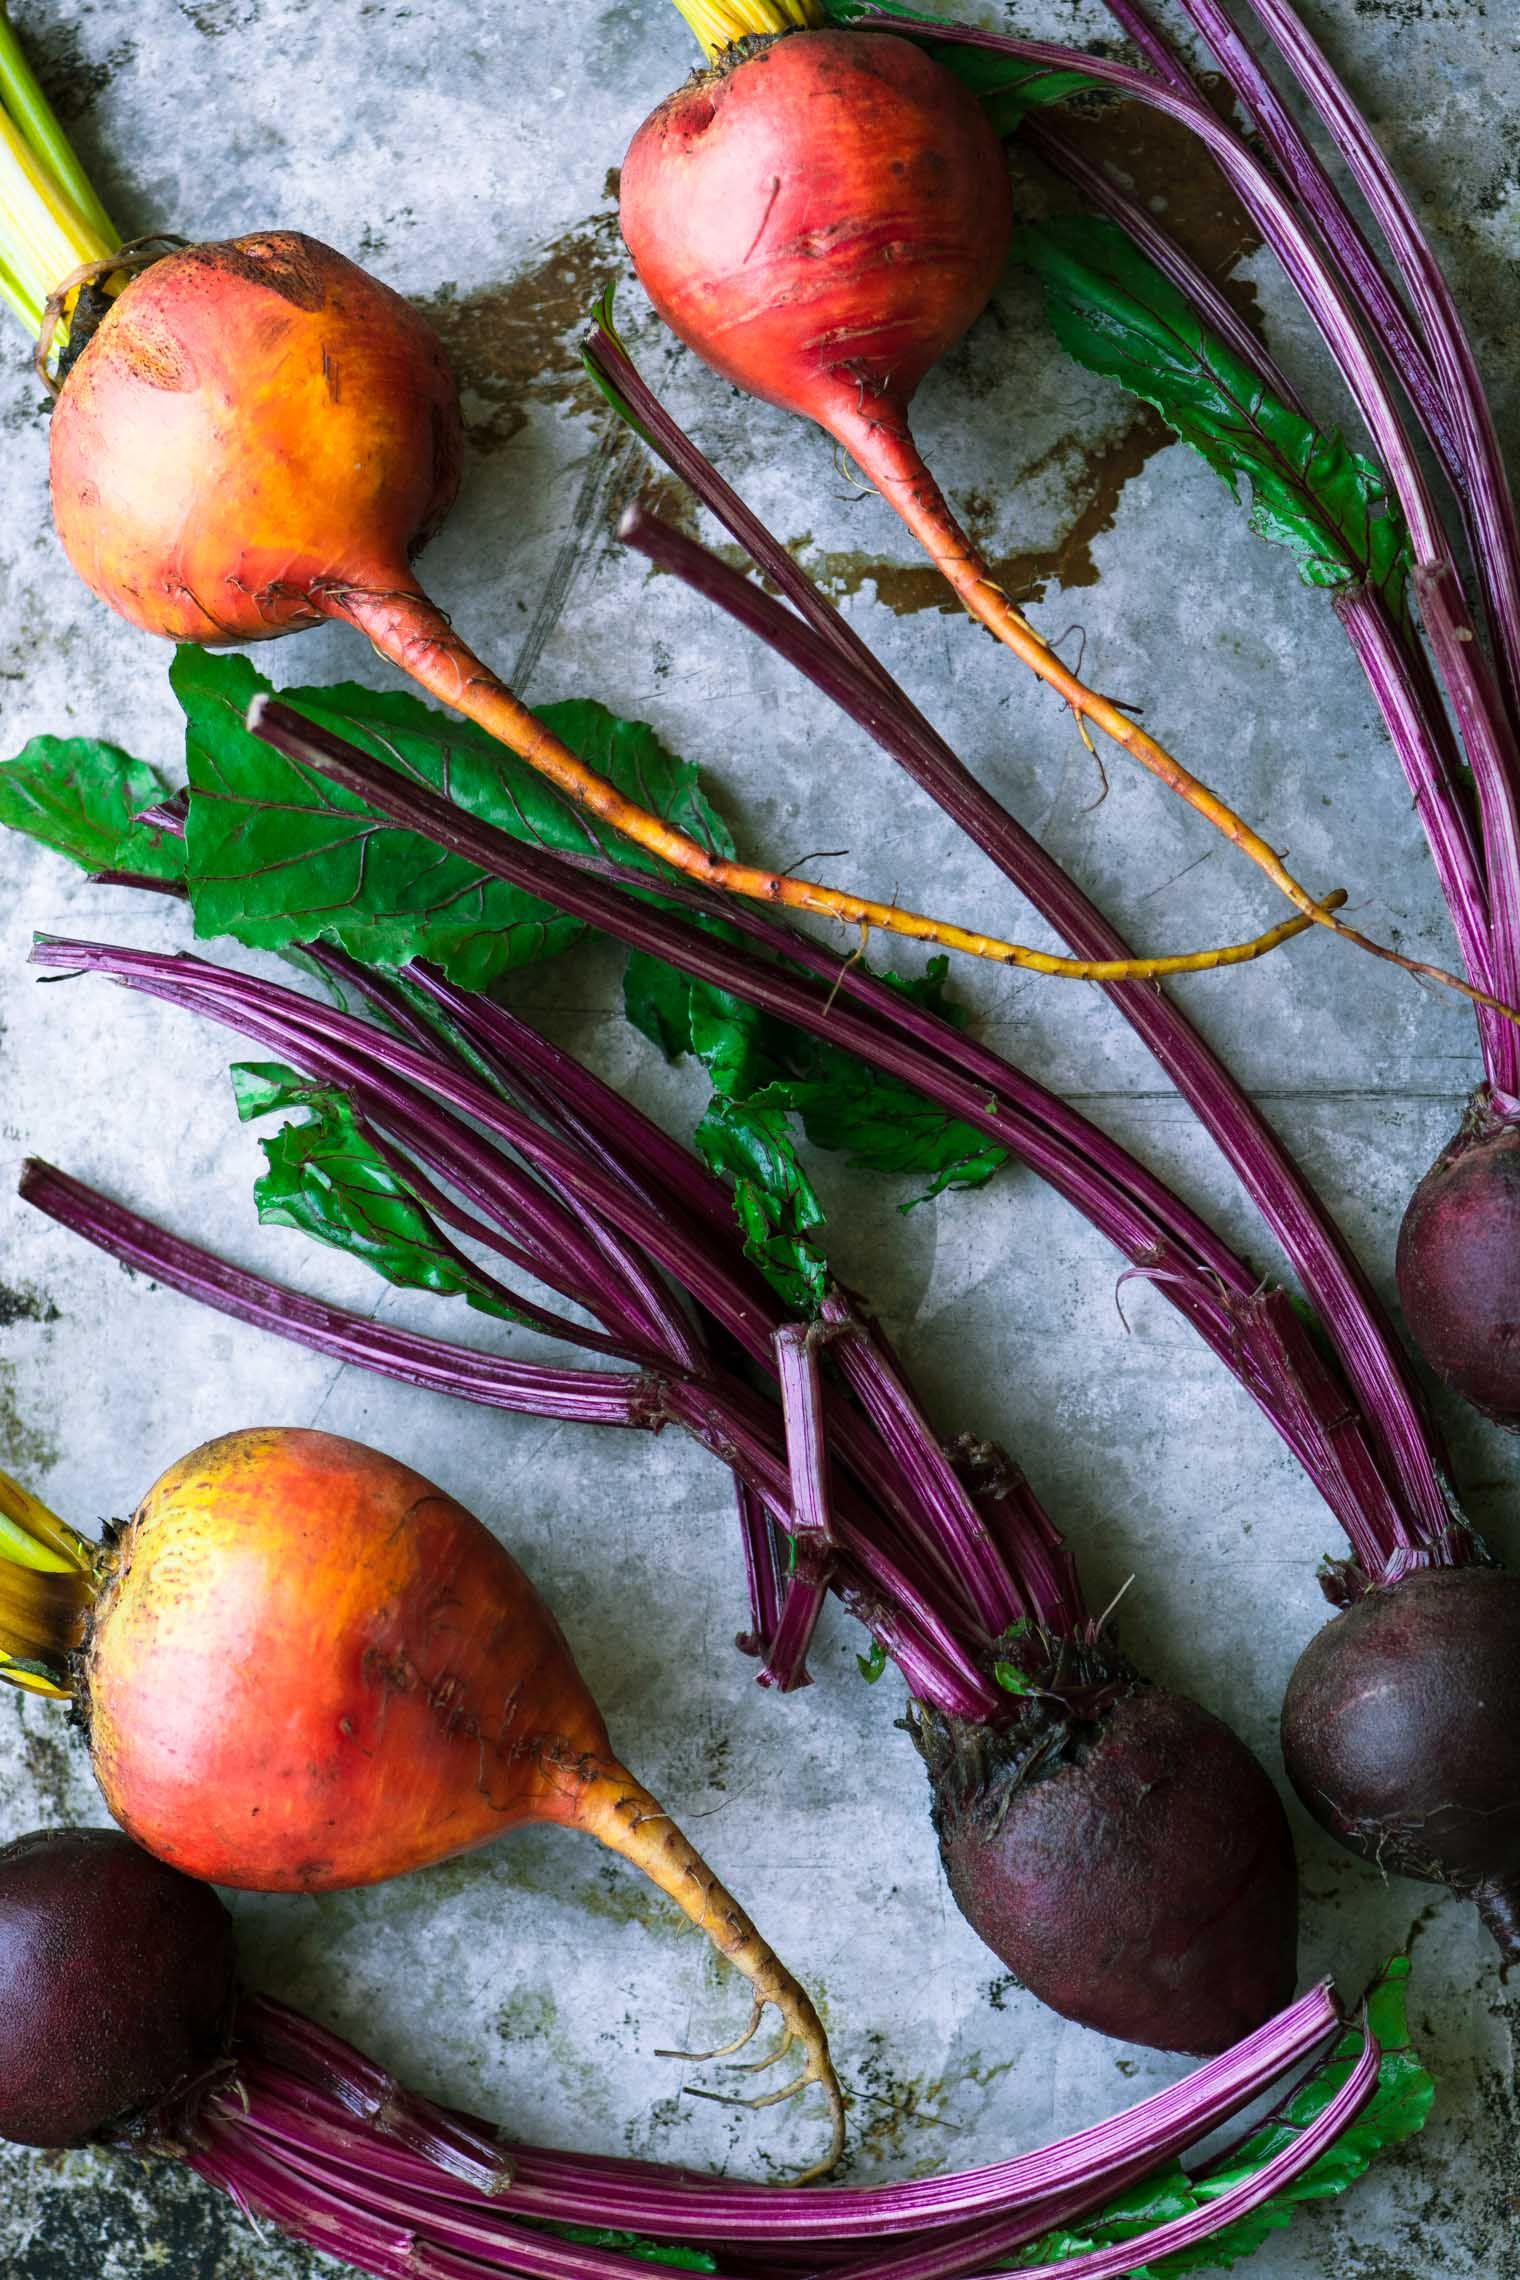 beets on a metal surface